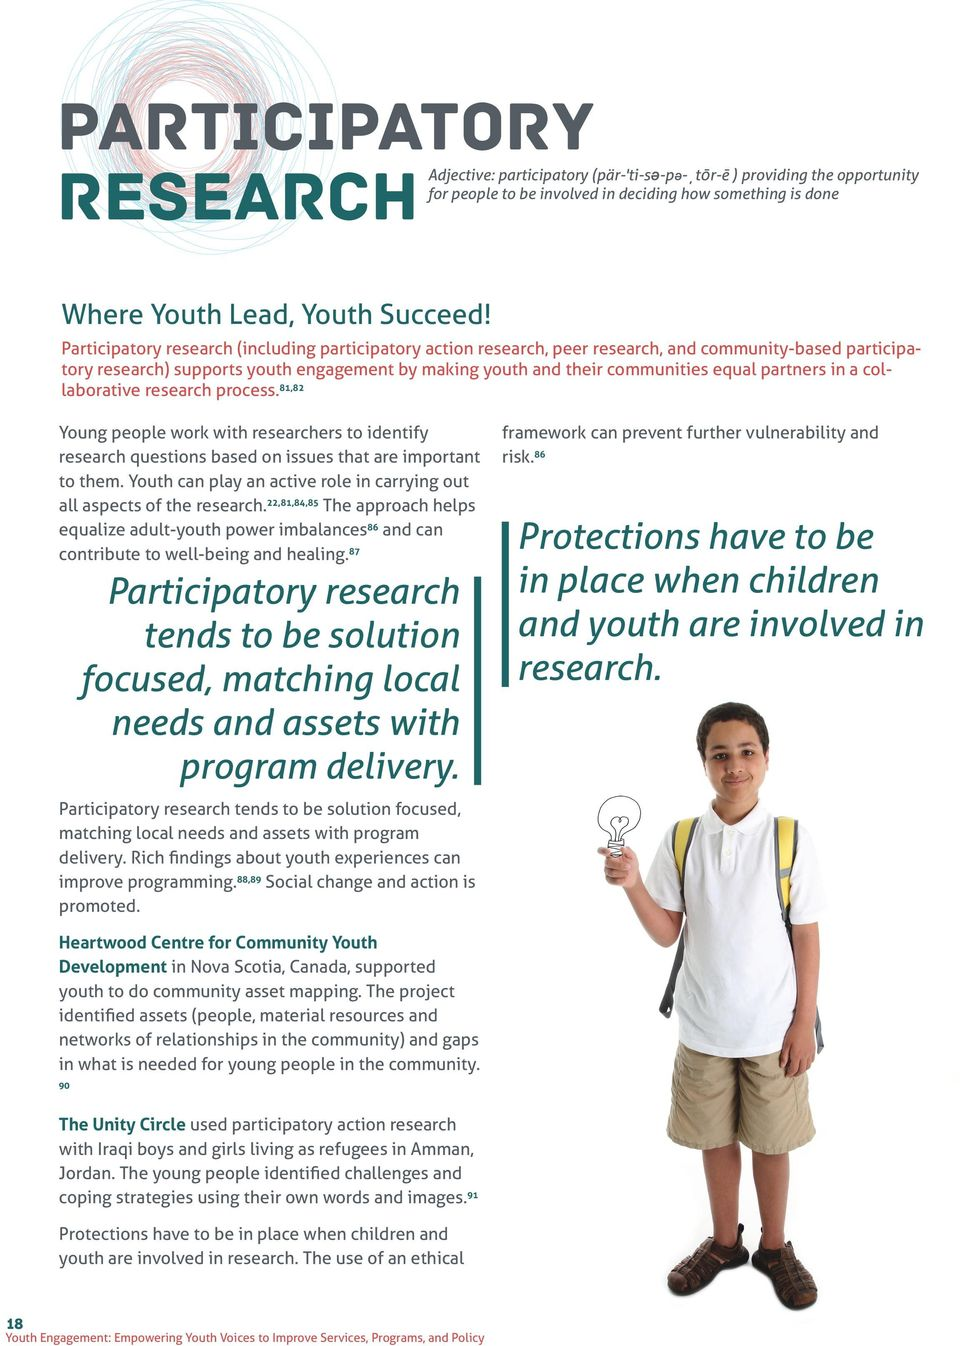 partners in a collaborative research process. 81,82 Young people work with researchers to identify research questions based on issues that are important to them.